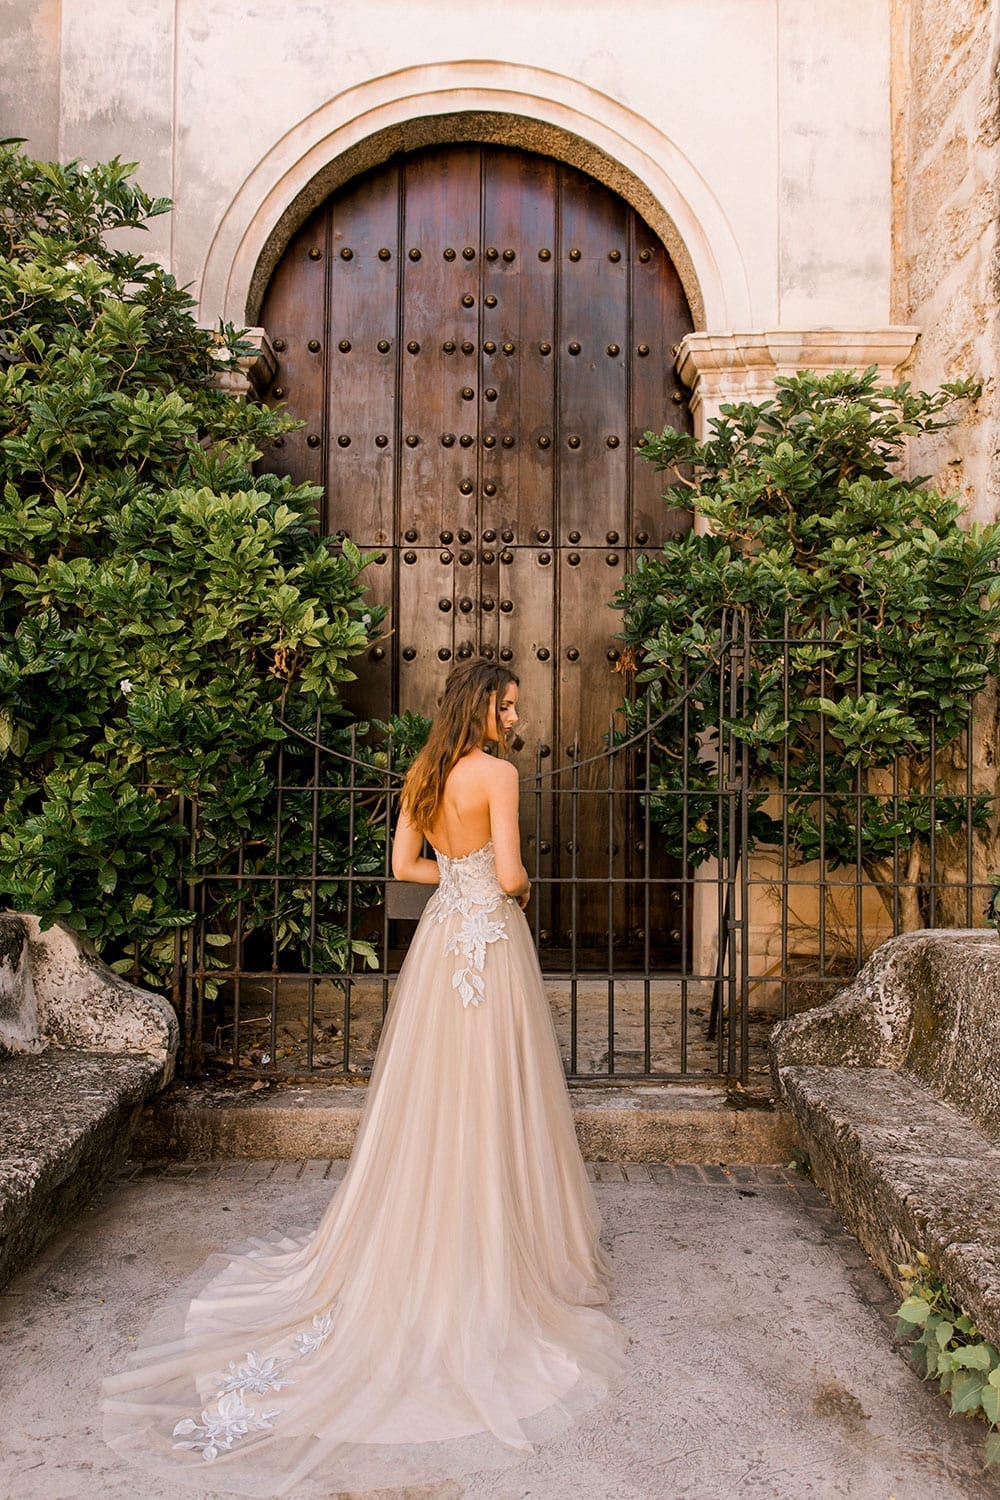 Model wearing Vinka Design Narnia Wedding Dress, a Strapless Tulle Gown with Silver Embroidered Lace Detail facing away in front of a wooden doorway with arch in Cuba